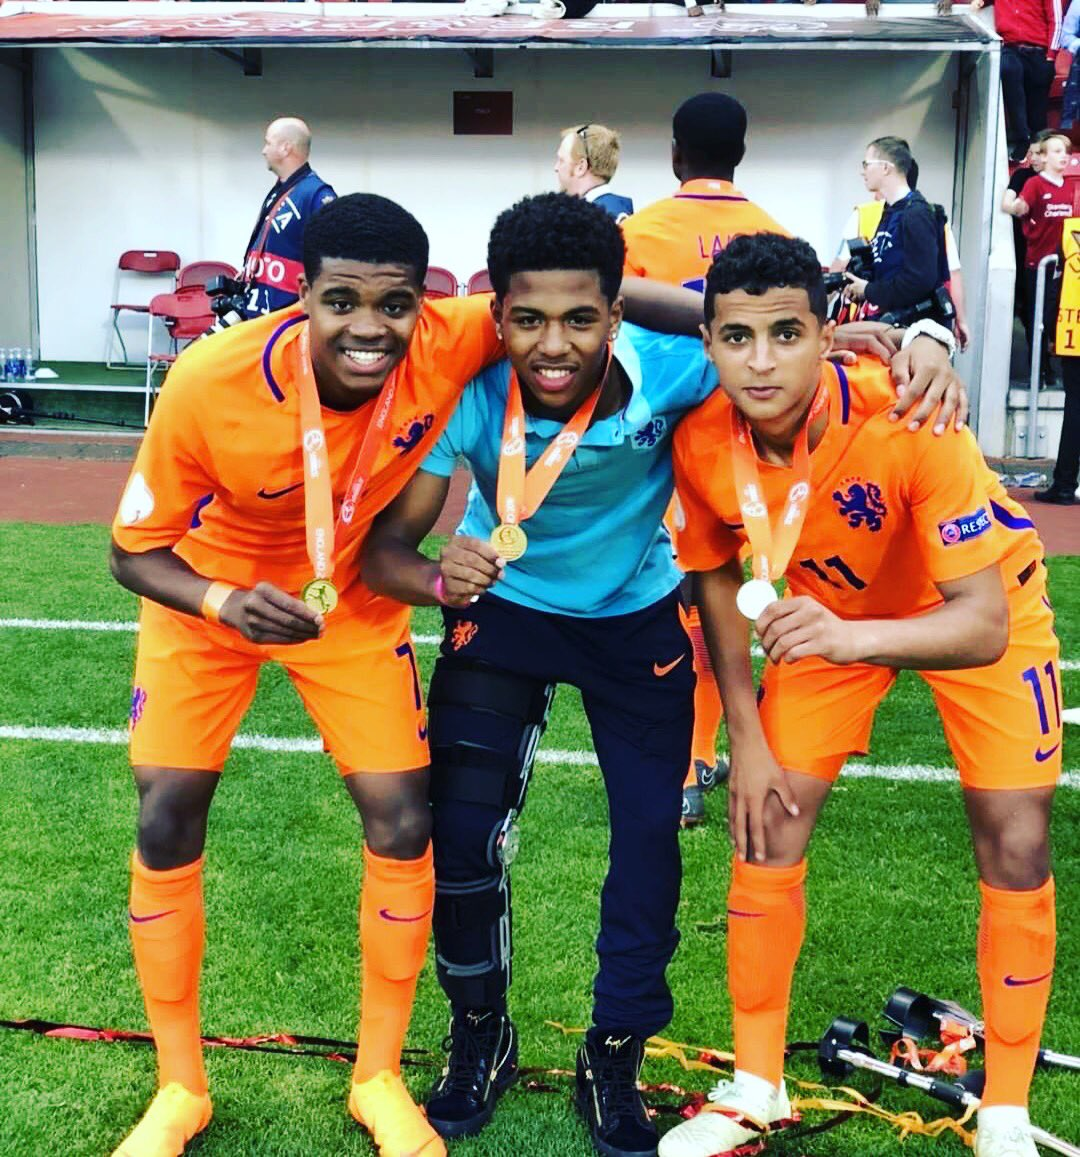 Well done Nigel Thomas, Shurandy Sambo and Mo Ihattaren for winning the European title for @OnsOranje 017, after winning the league with @PSV! 👏👏👌👌👊🏼👊🏼💪🏻💪🏻 Get well soon shurandy!